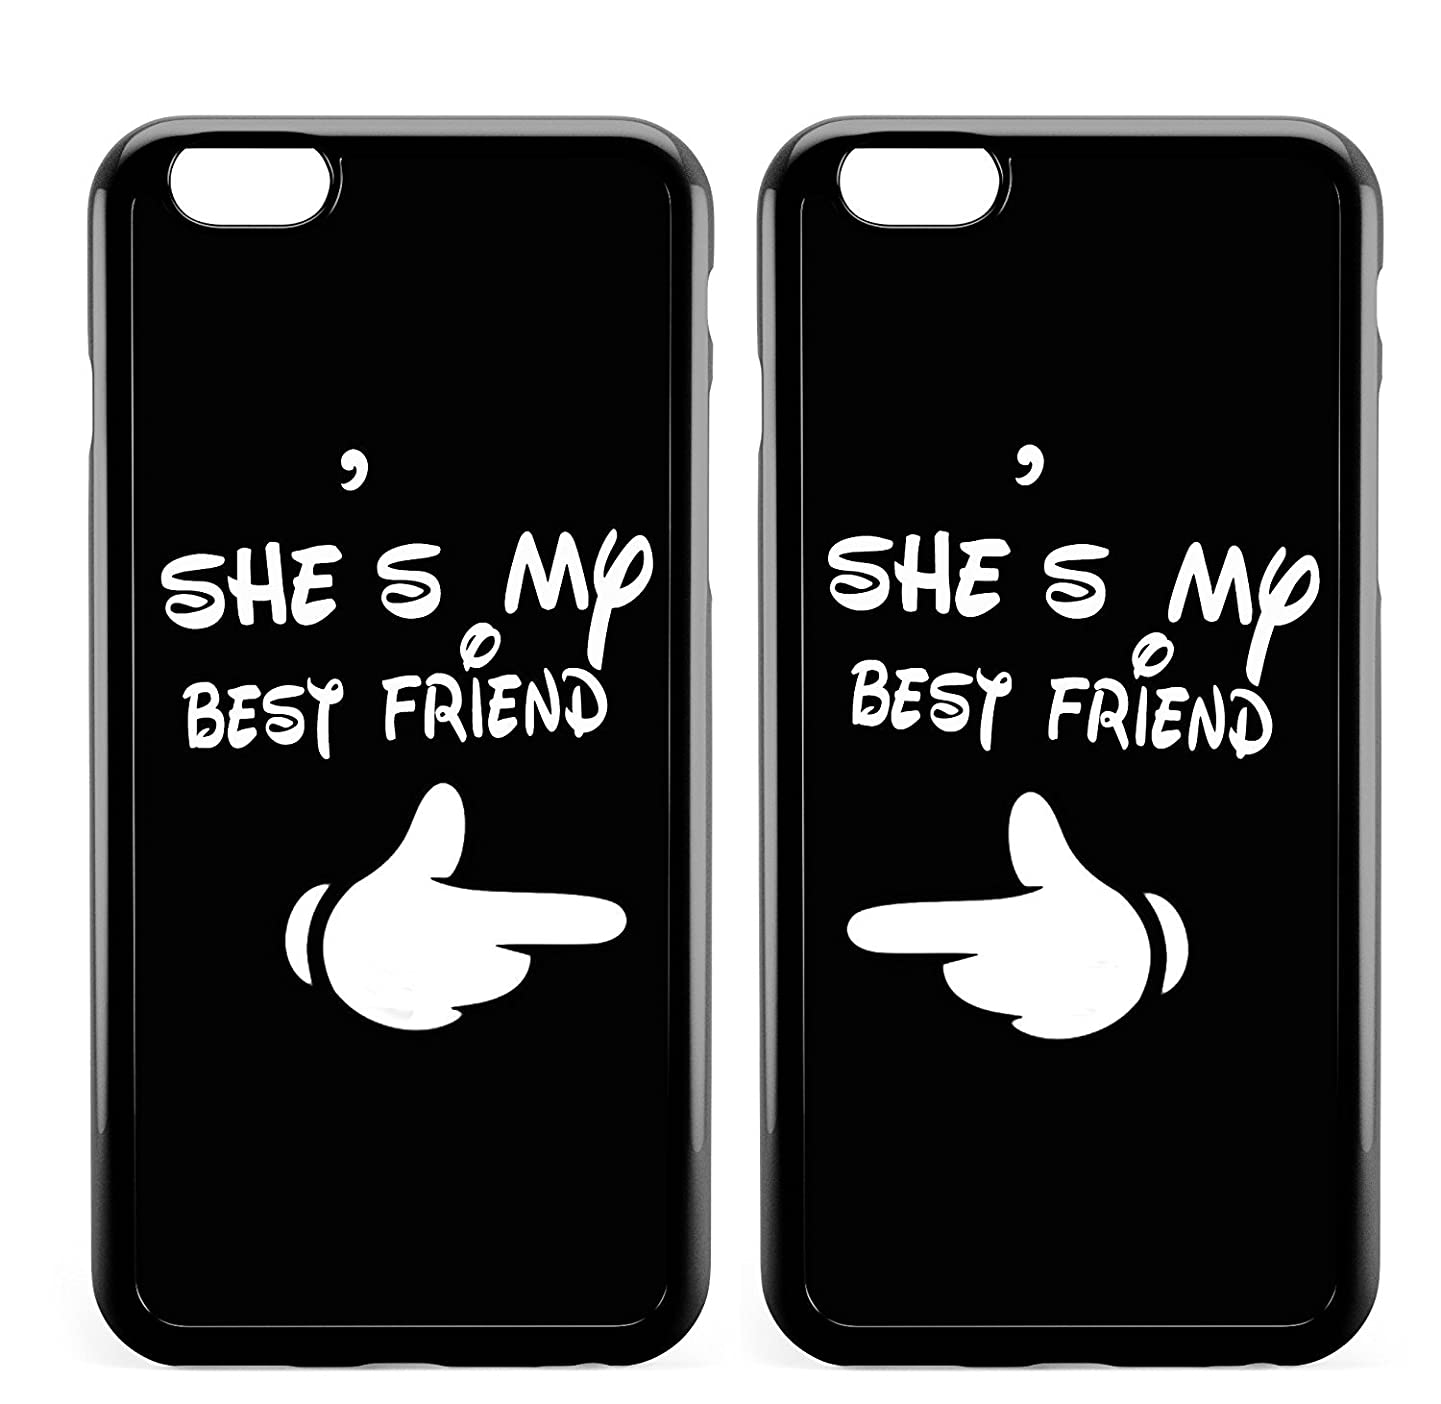 Carton Funny Cute Girls Best Friend Forever BFF Stuff Matching Cases for Teen Girls for iPhone 8 Plus(iPhone 7 Plus),Funny She's My Best Girlfriend Couple Black Soft Cases for Teen for iPhone 7 Plus